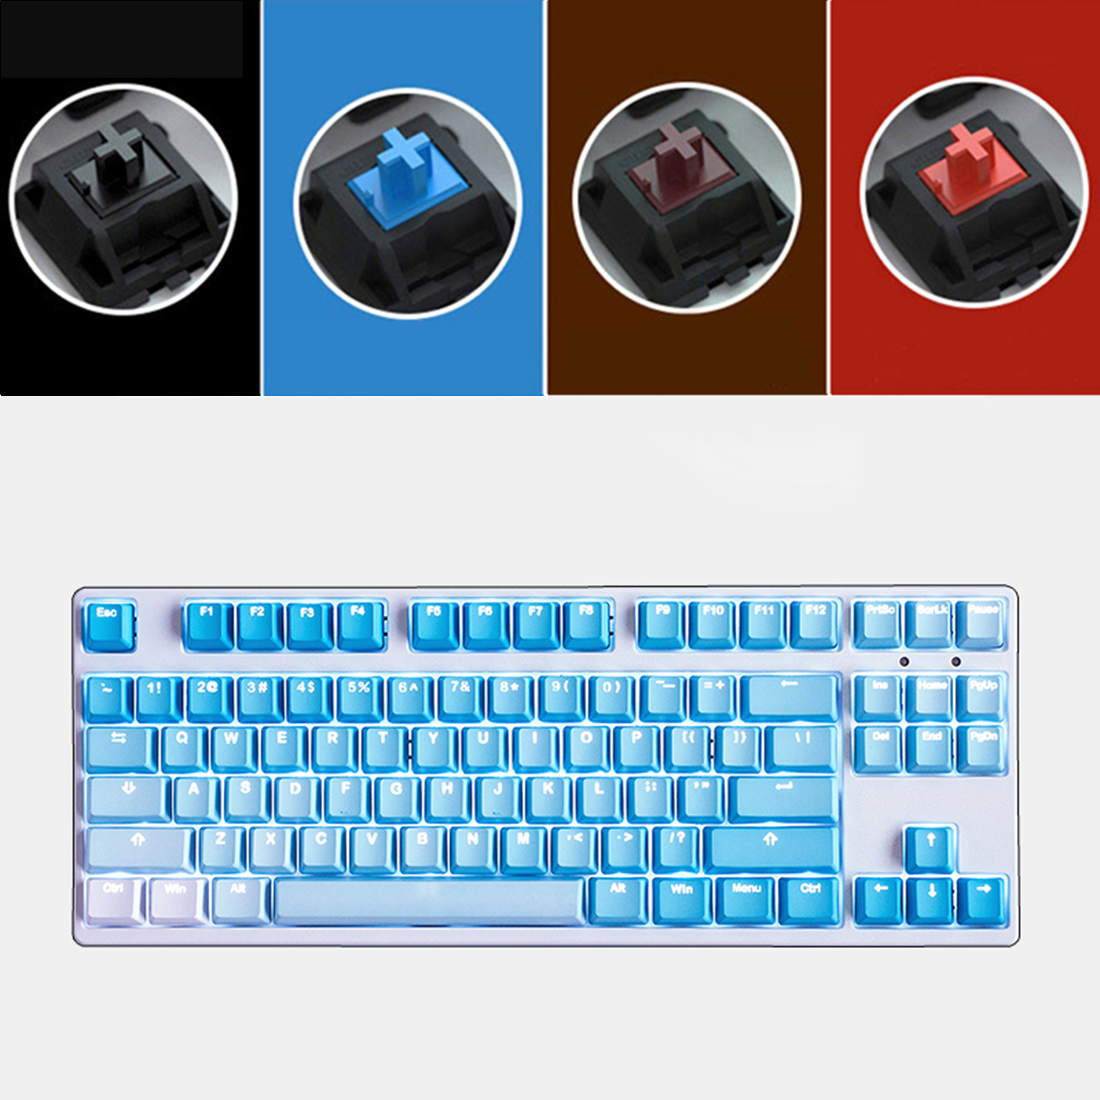 Unicorn 87 Keys Wired Mechanical Keyboard E-sports Gaming Keyboard - White Backlit / Frost Blue (Cherry Red Switch)